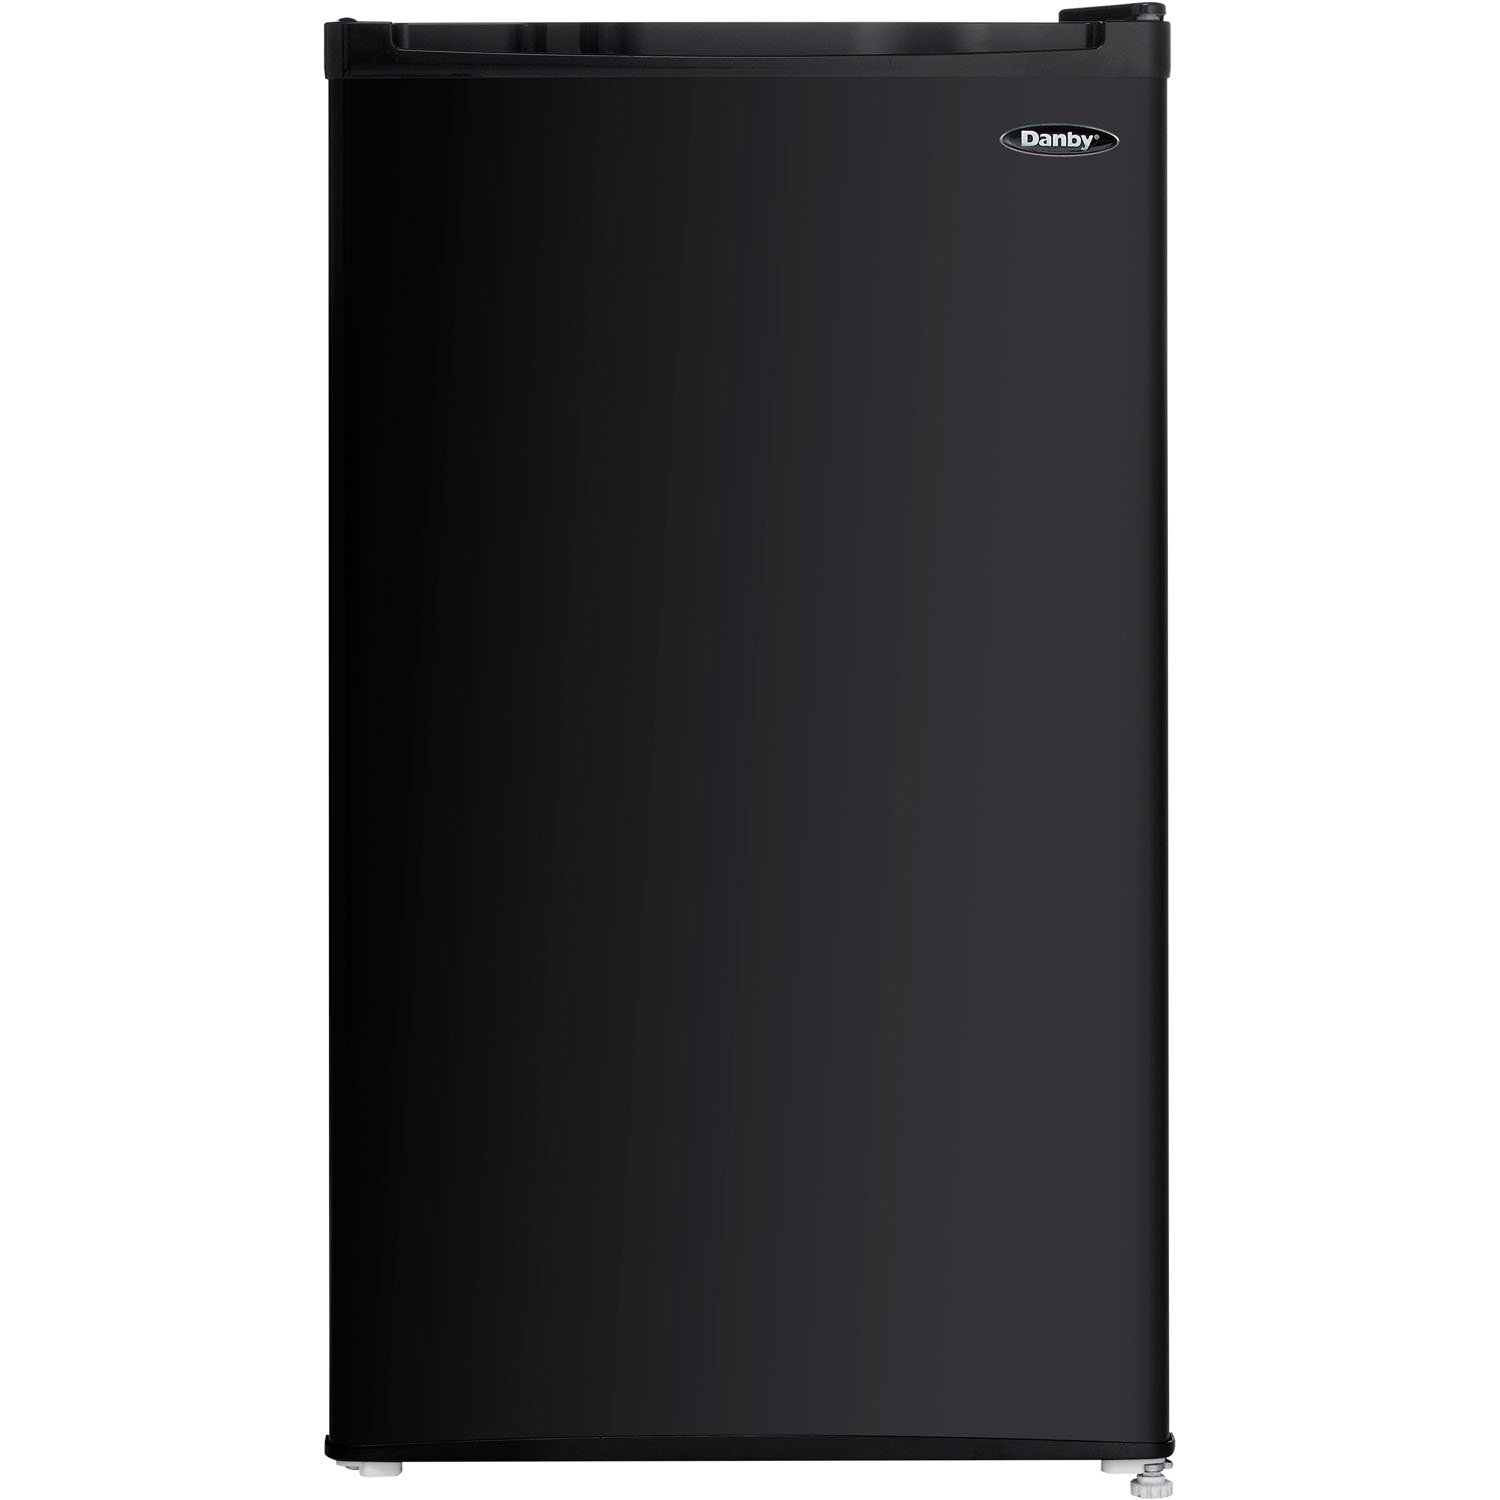 DANBY PRODUCTS DCR032C1BDB Compact Refrigerator,1 Door 3.2 cu-ft Black